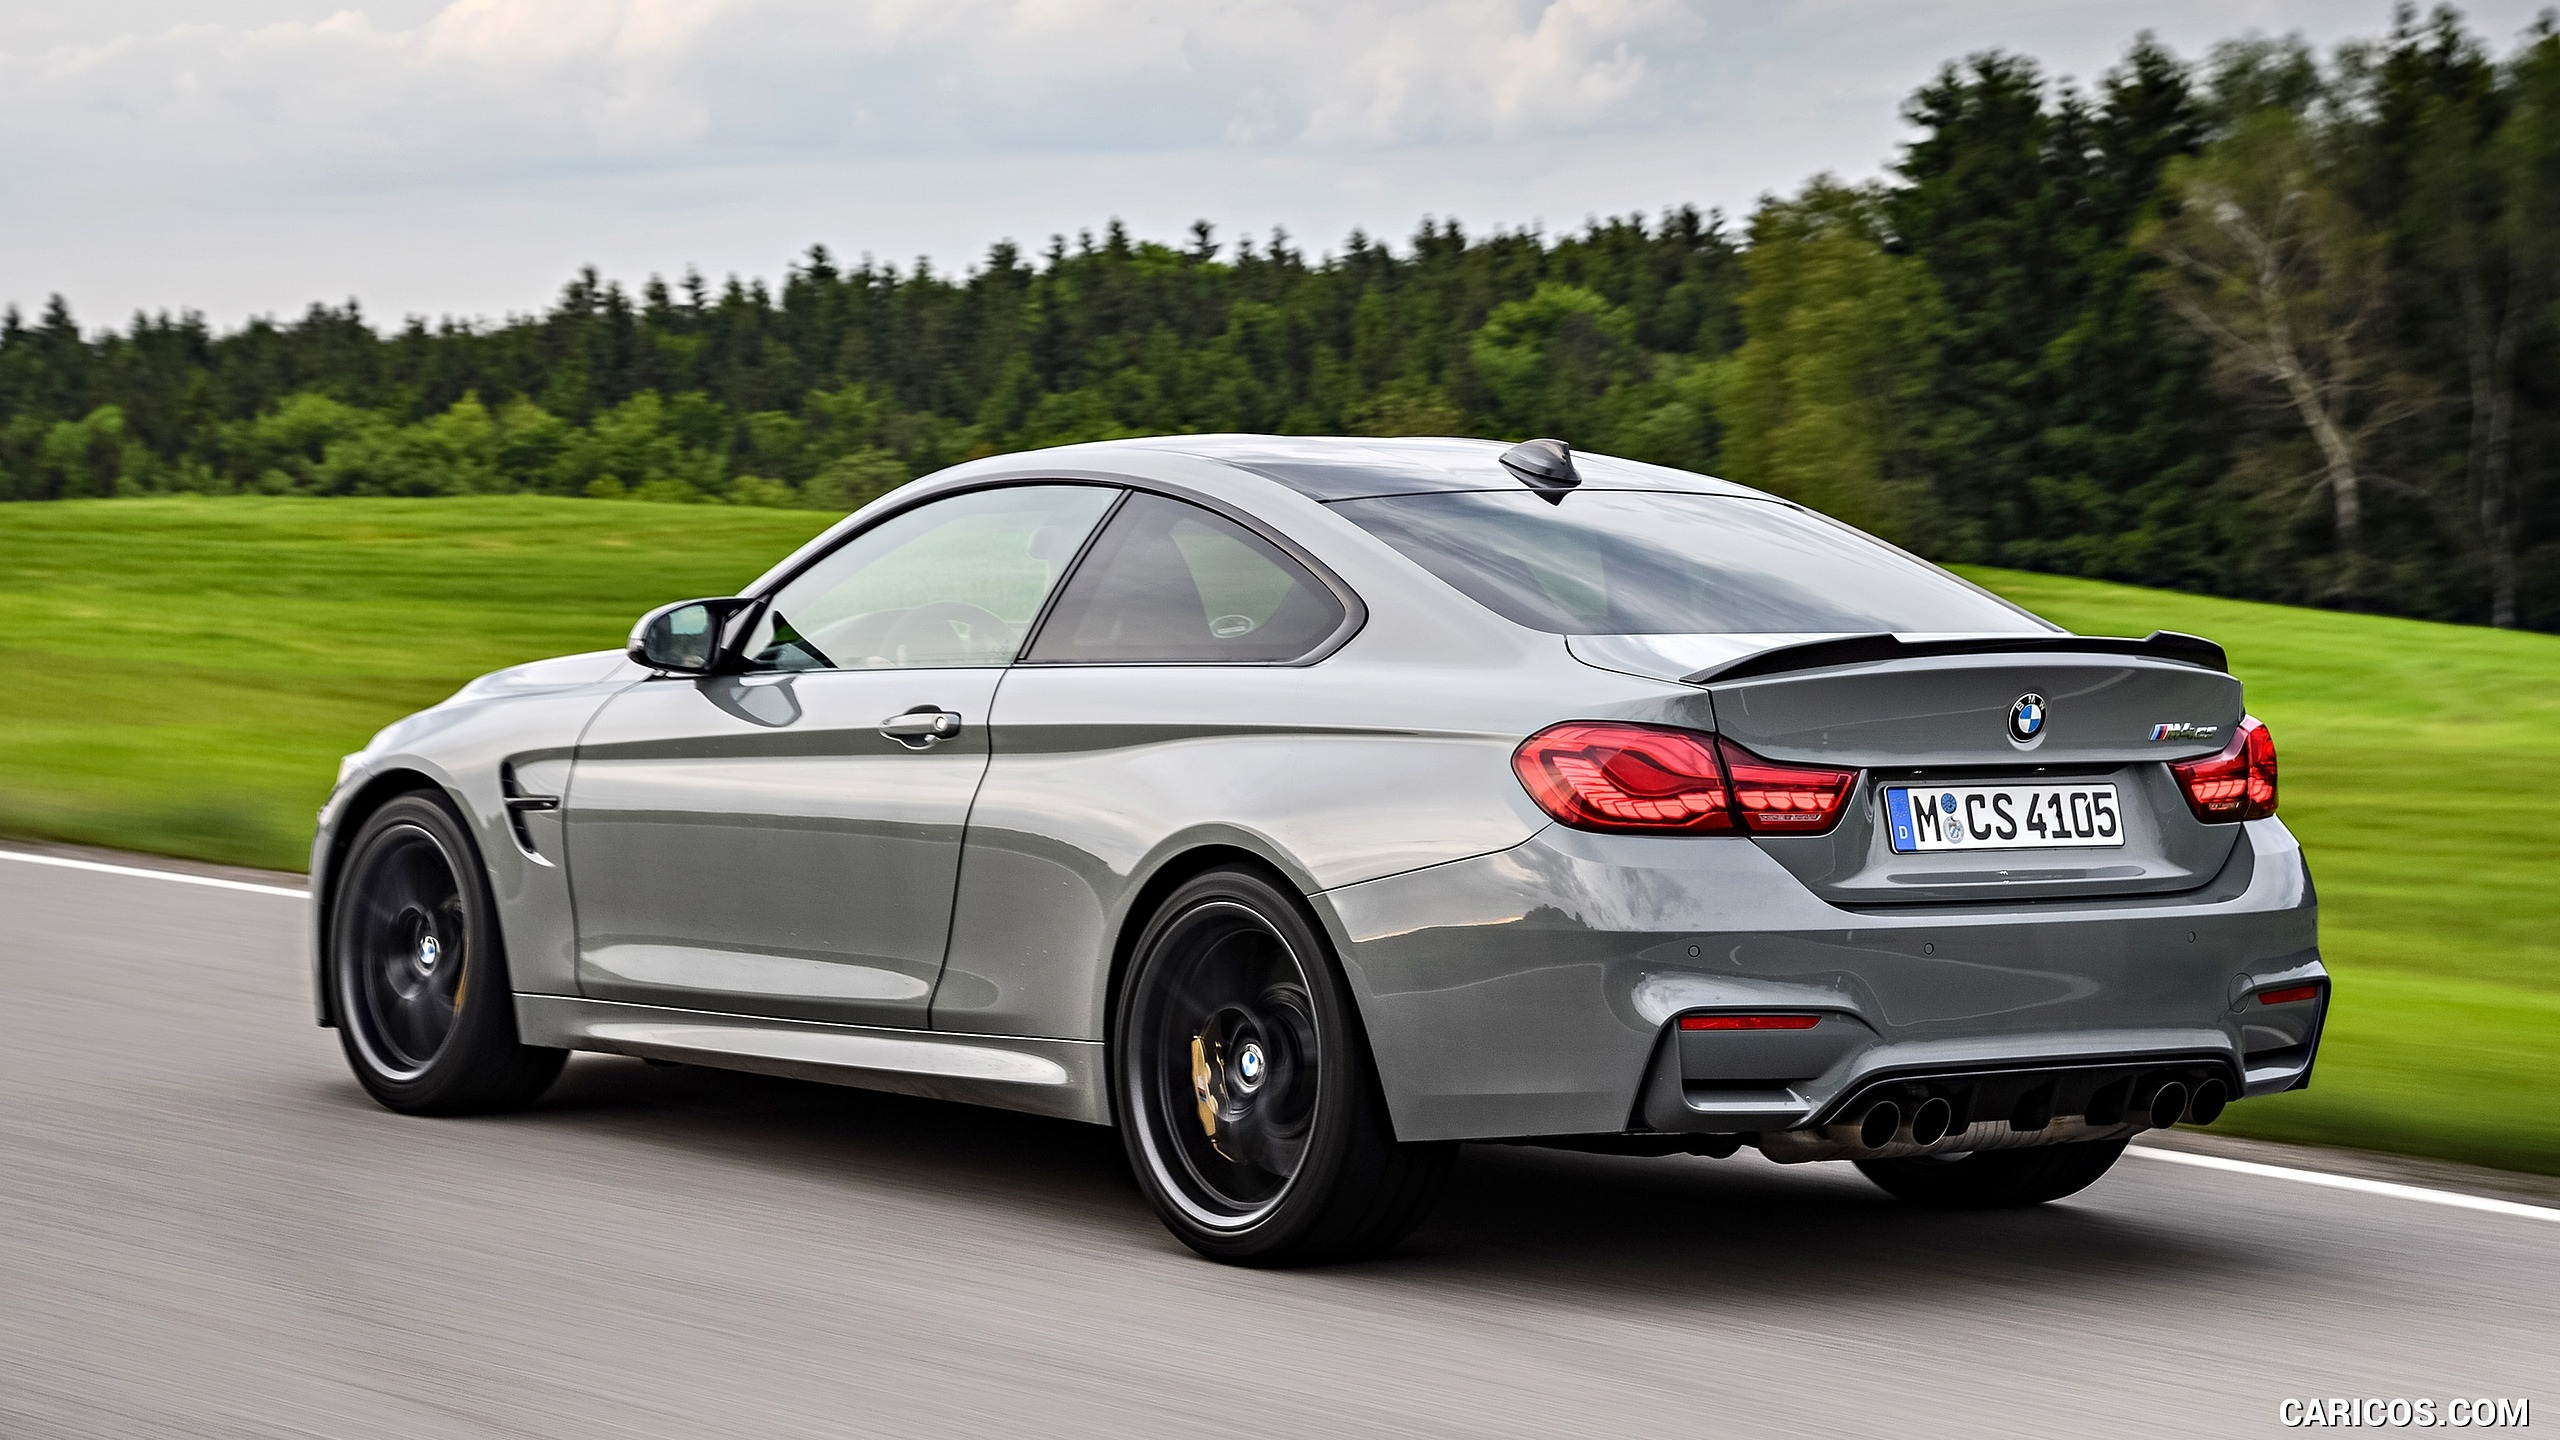 43 The Best 2020 BMW M4 Review and Release date